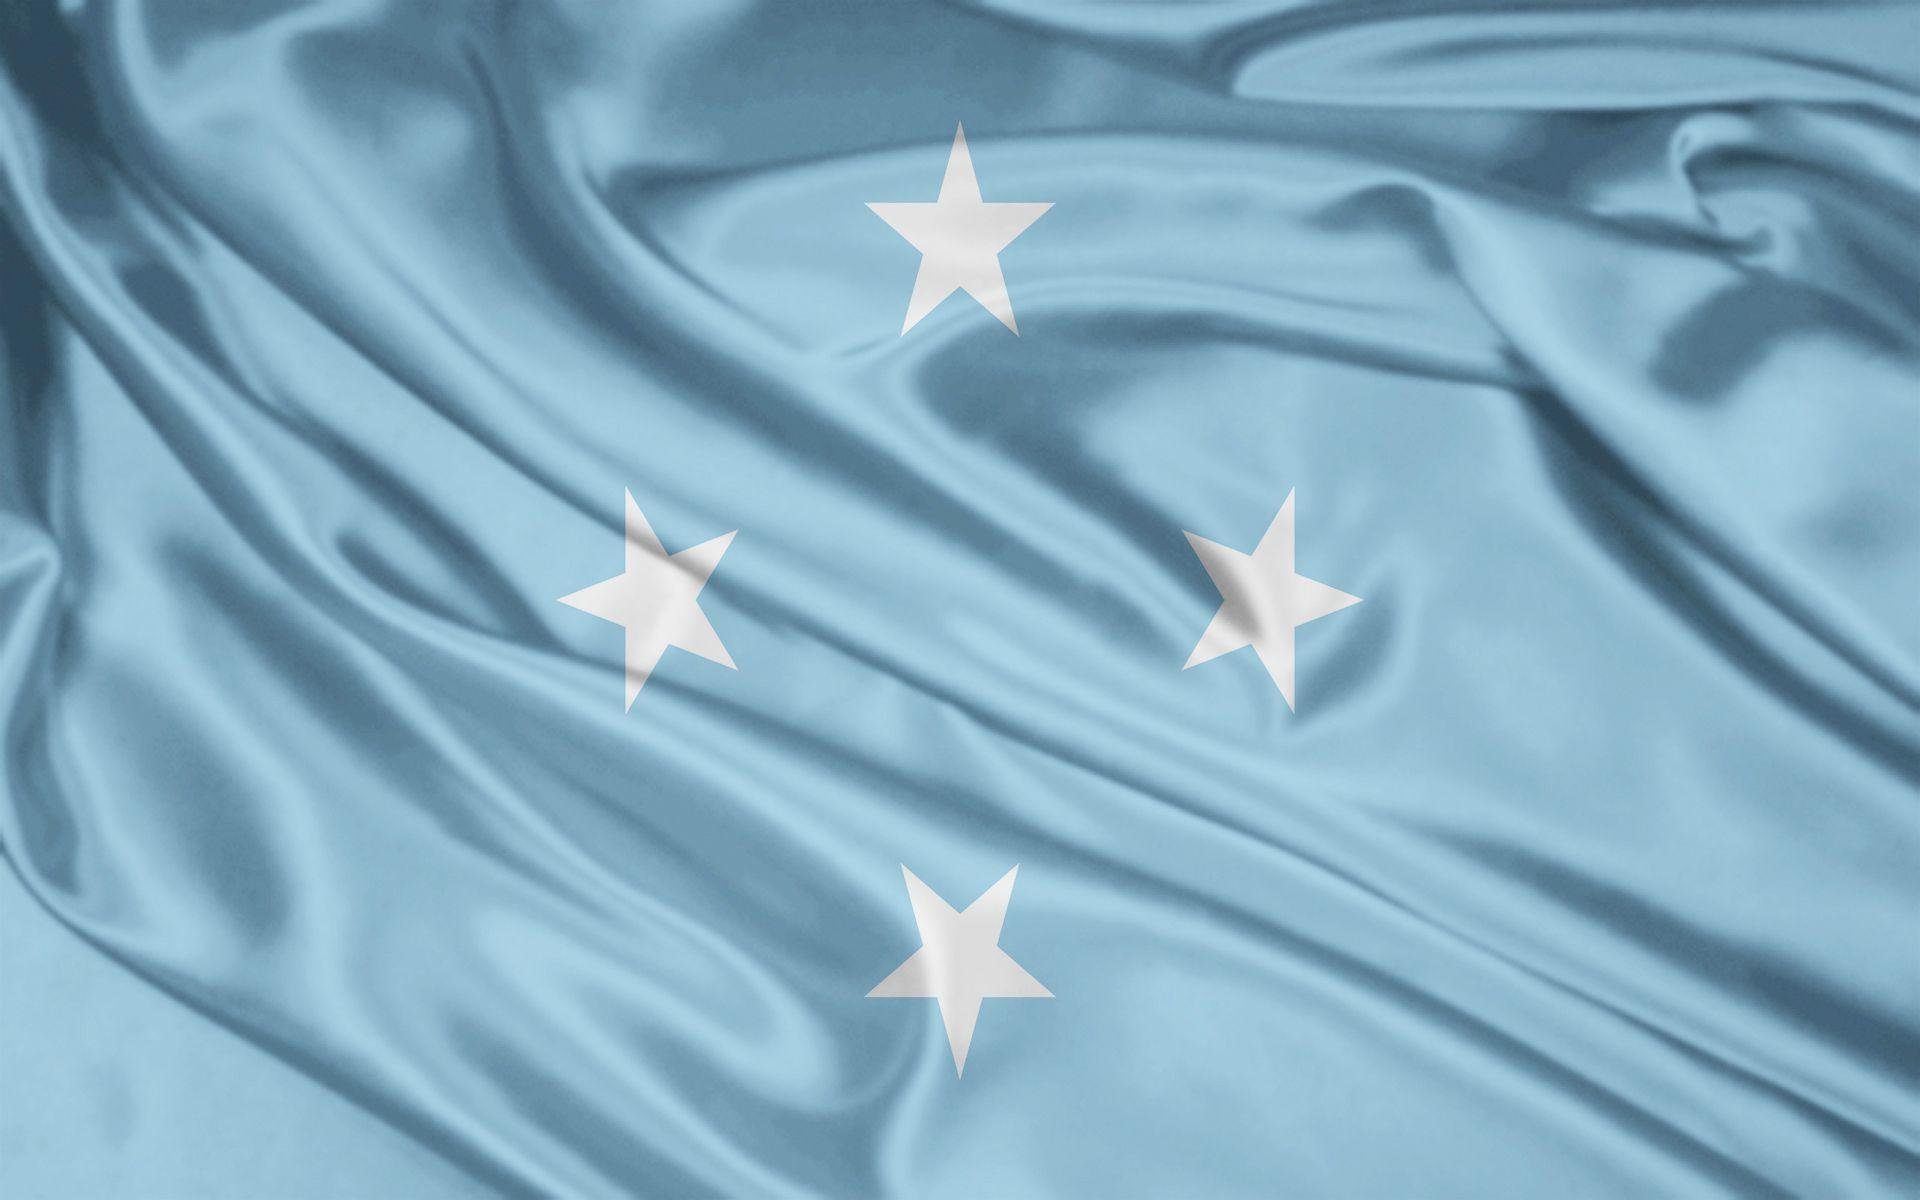 Micronesia flag wallpapers | Micronesia flag stock photos